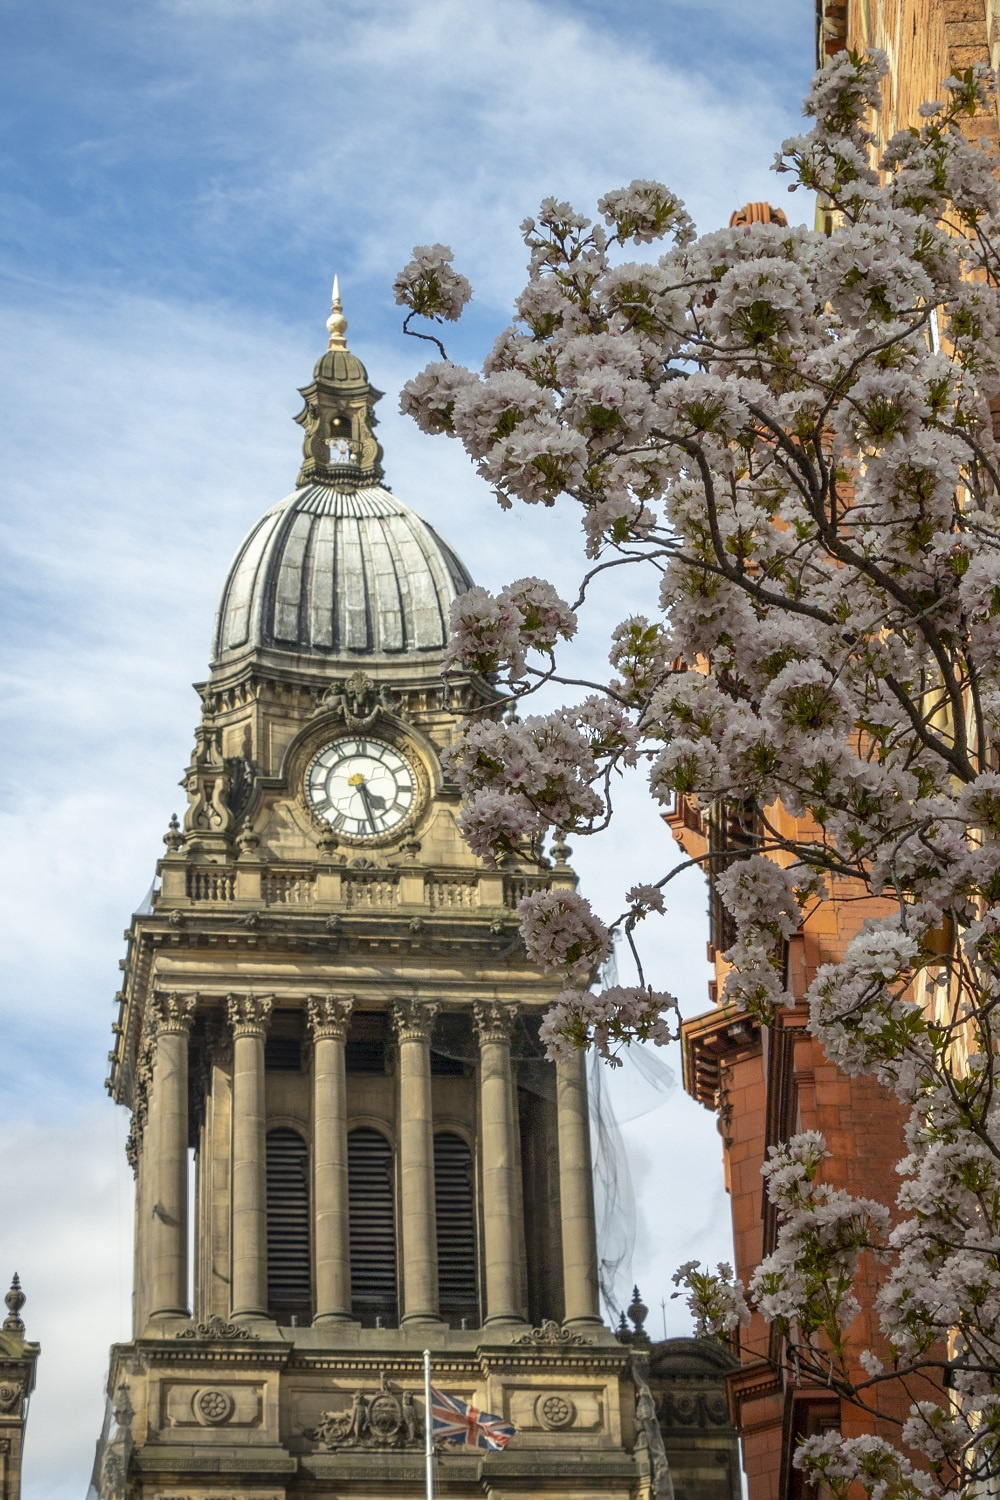 Leeds Town Hall through blossom, credit Carl Milner